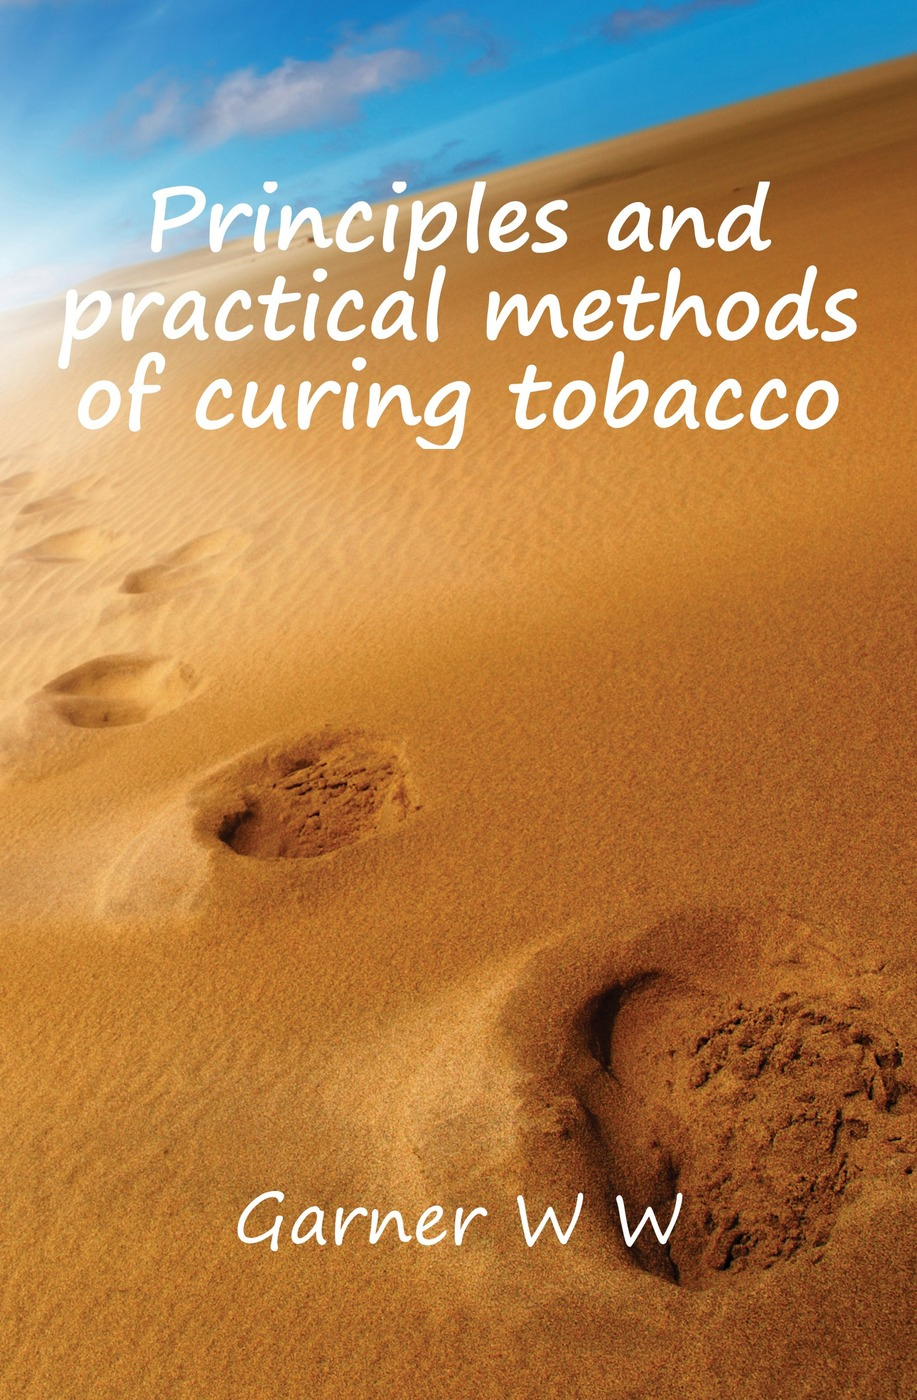 Principles and practical methods of curing tobacco